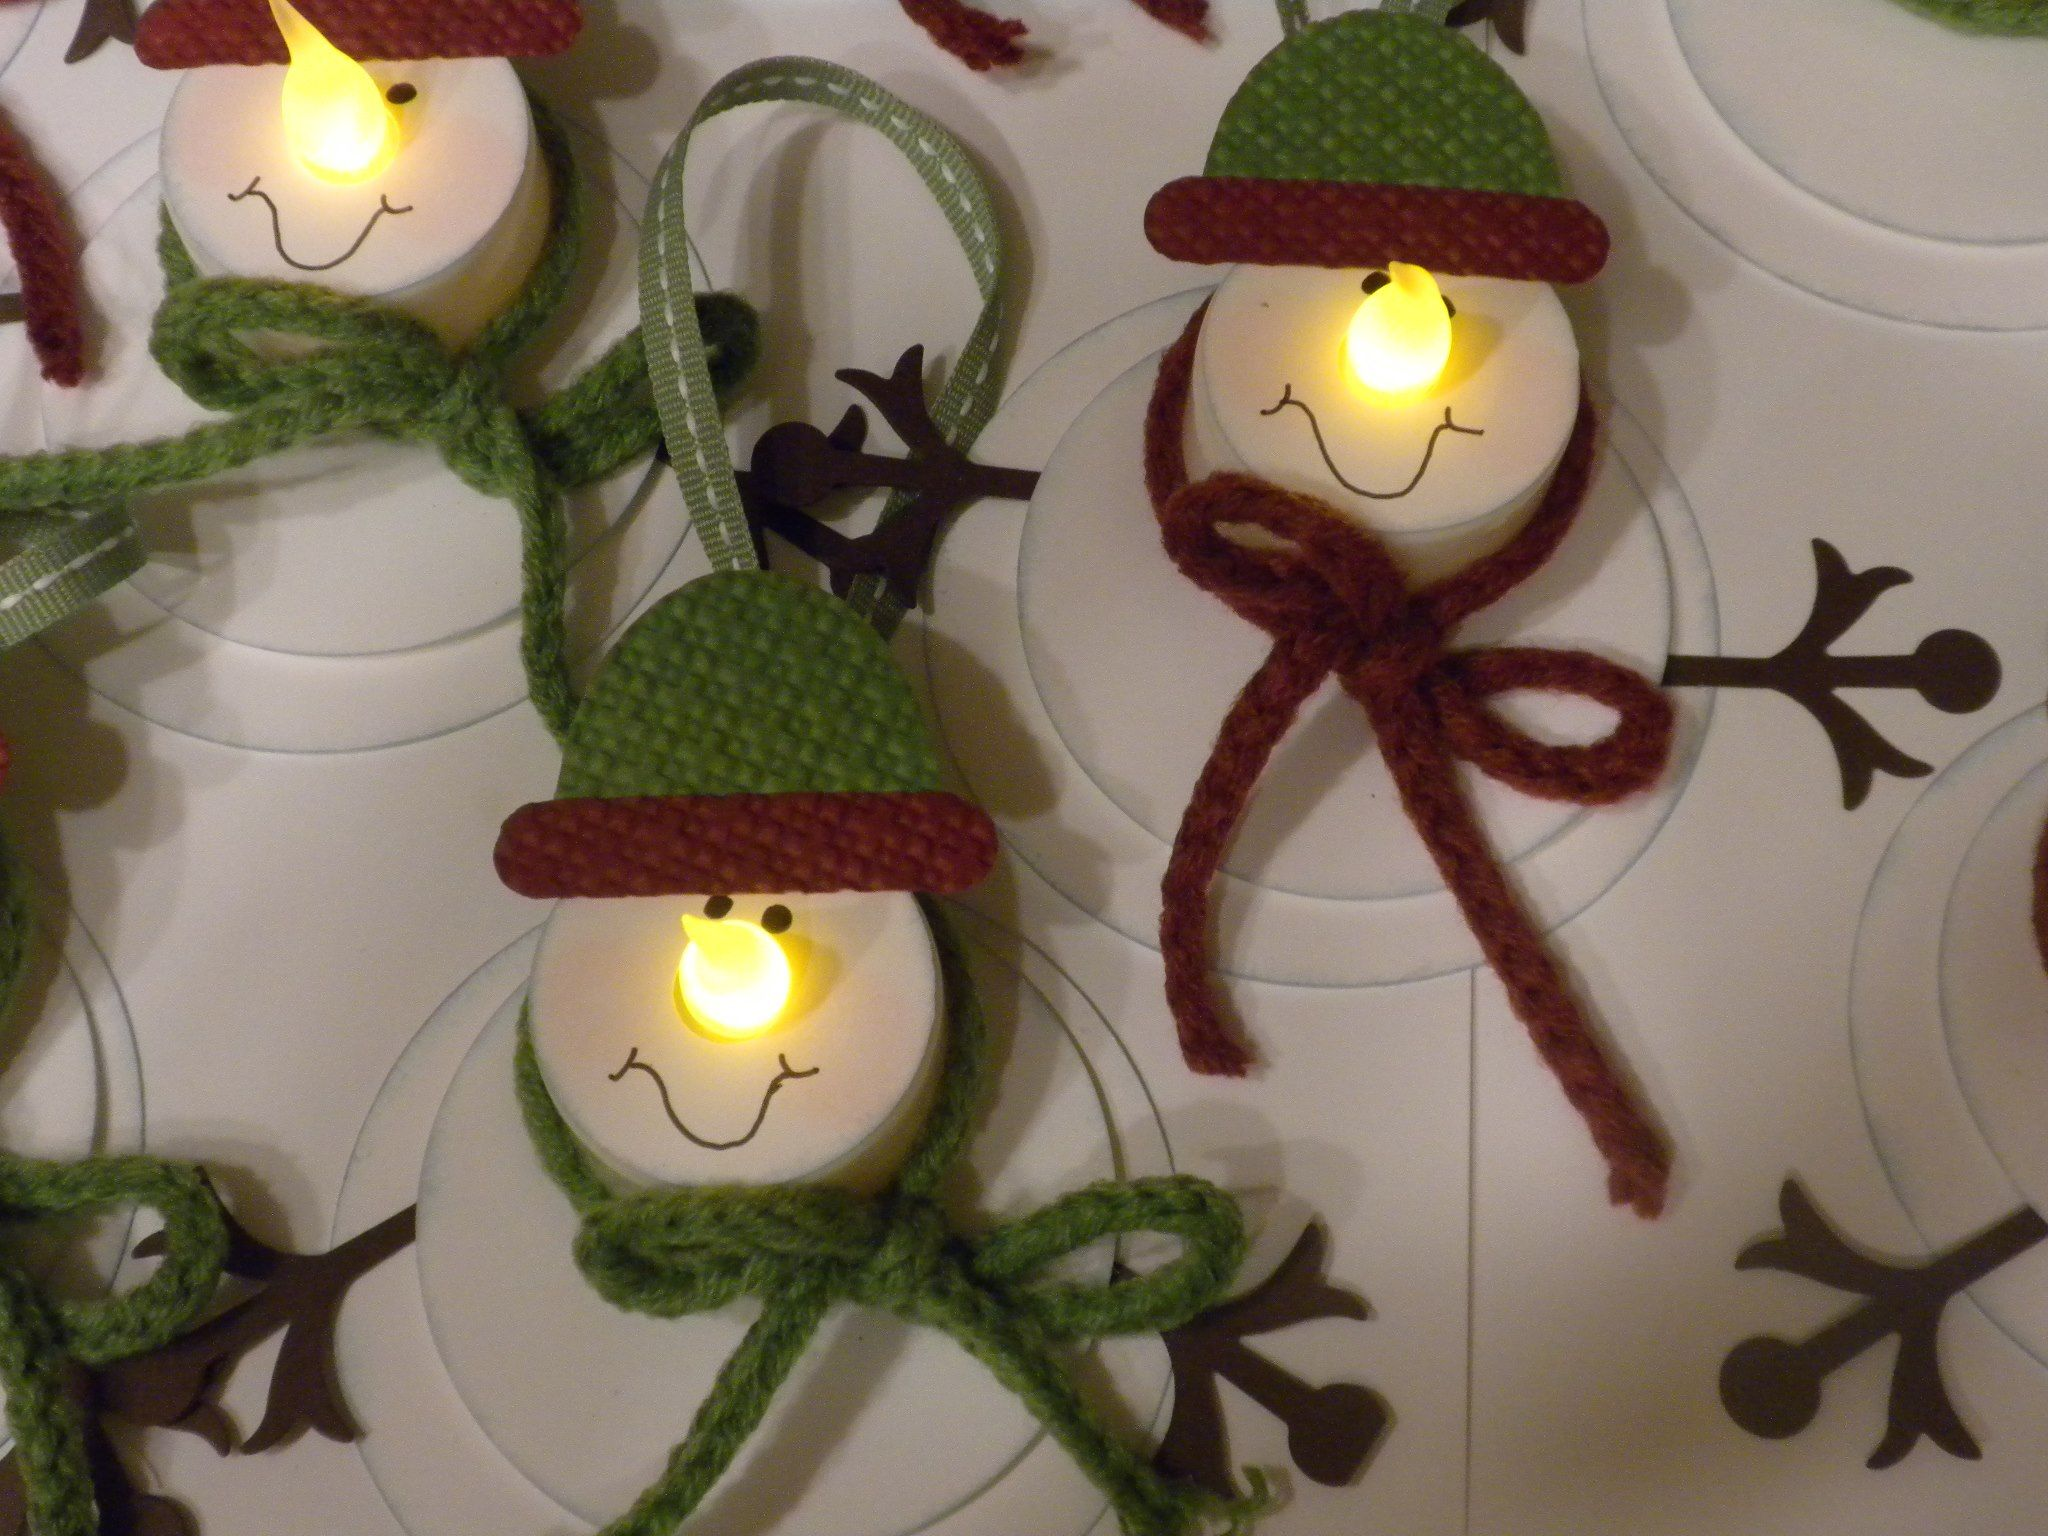 snowman ornaments or snowman tags made from tealights leslies blog